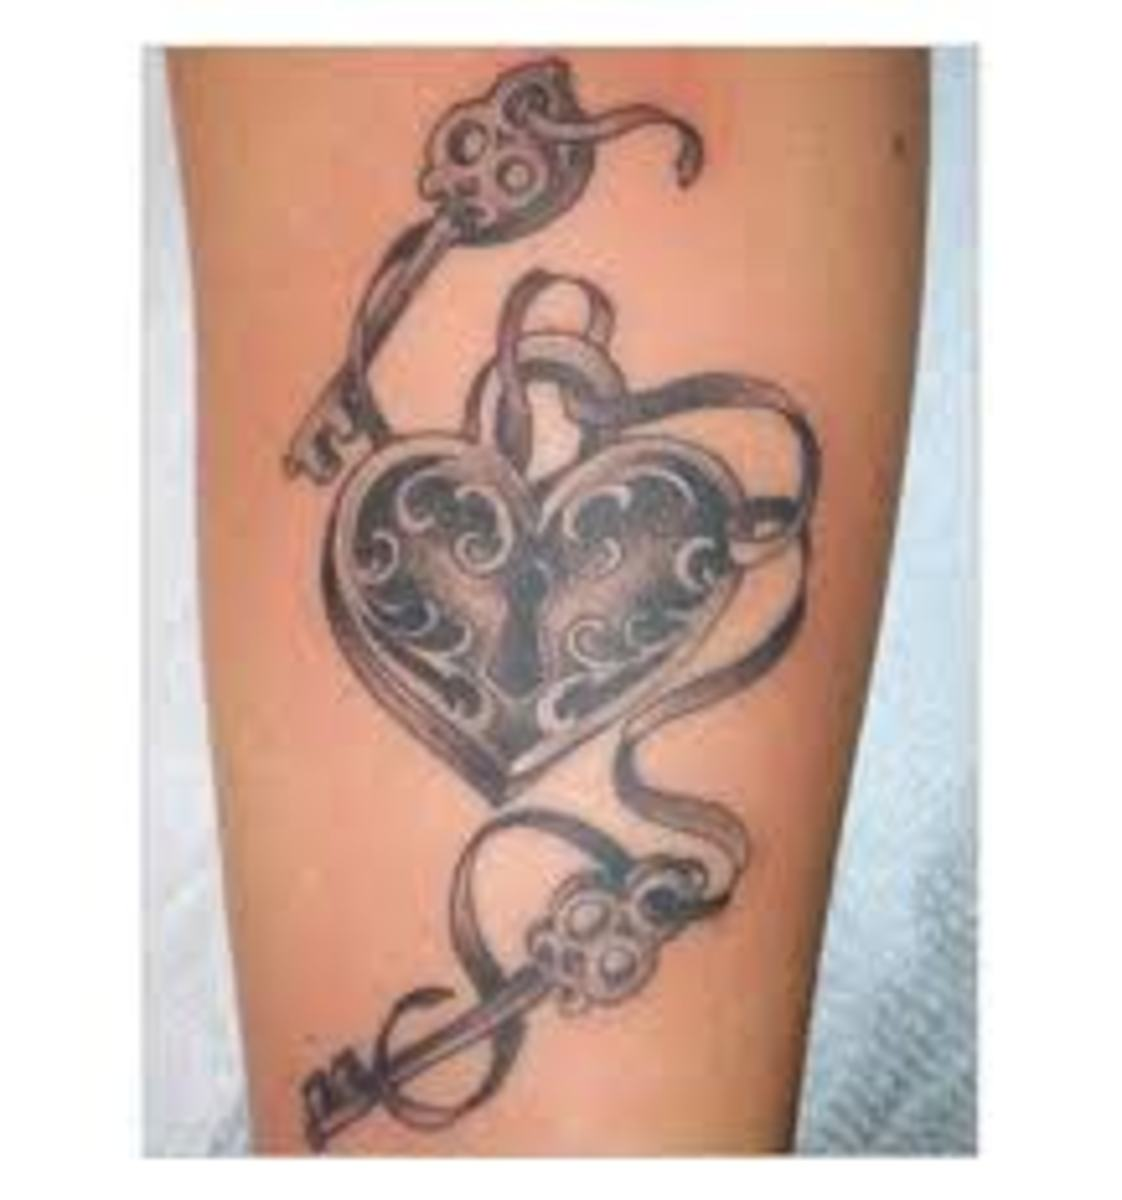 Key-and-Lock (and Key-and-Heart) Tattoo Designs And